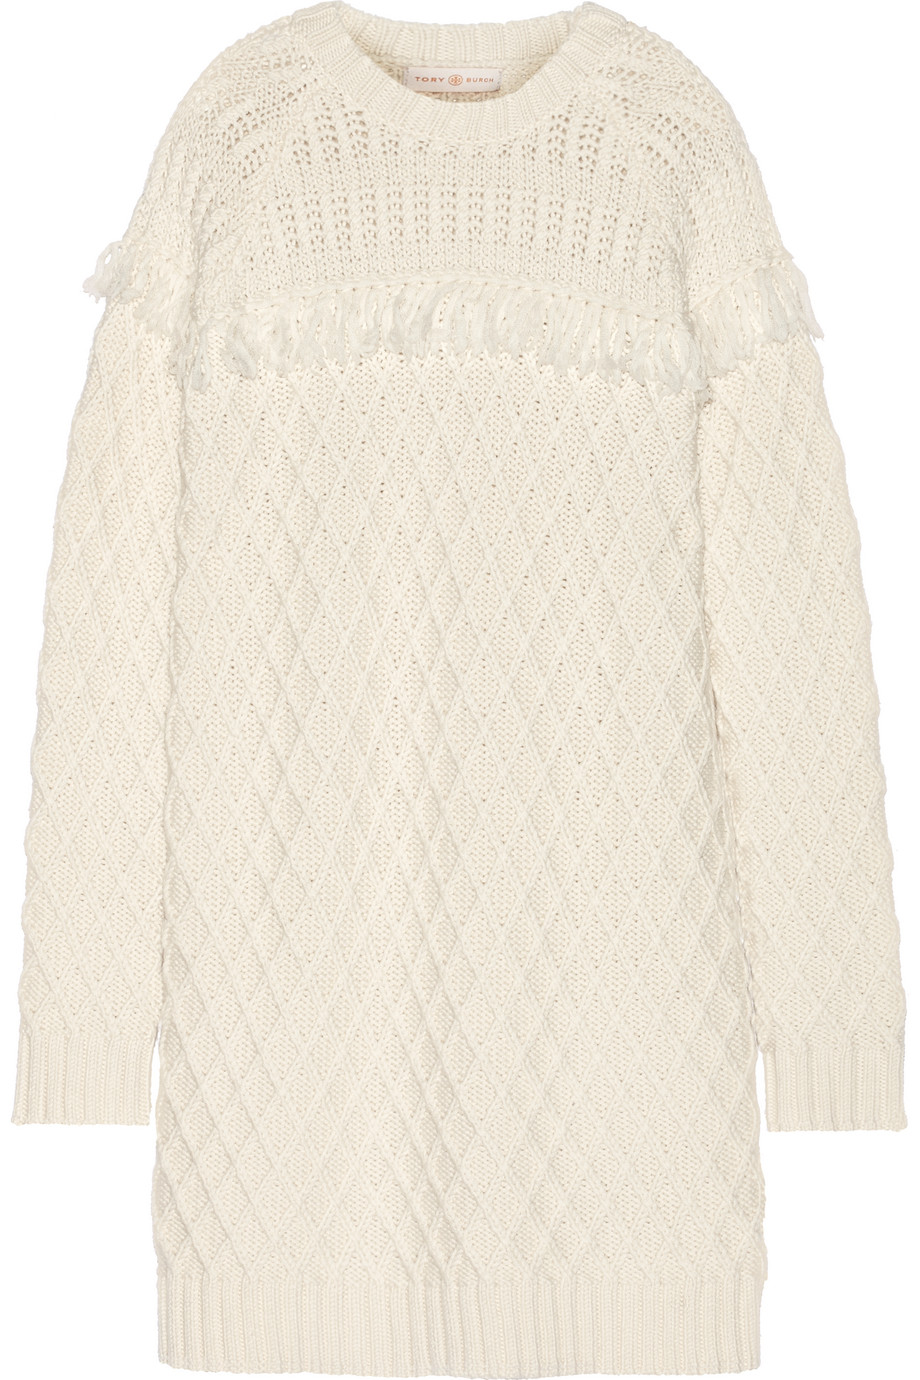 Tory Burch Fringed Cable-Knit Wool Sweater Dress, Ivory, Women's, Size: M